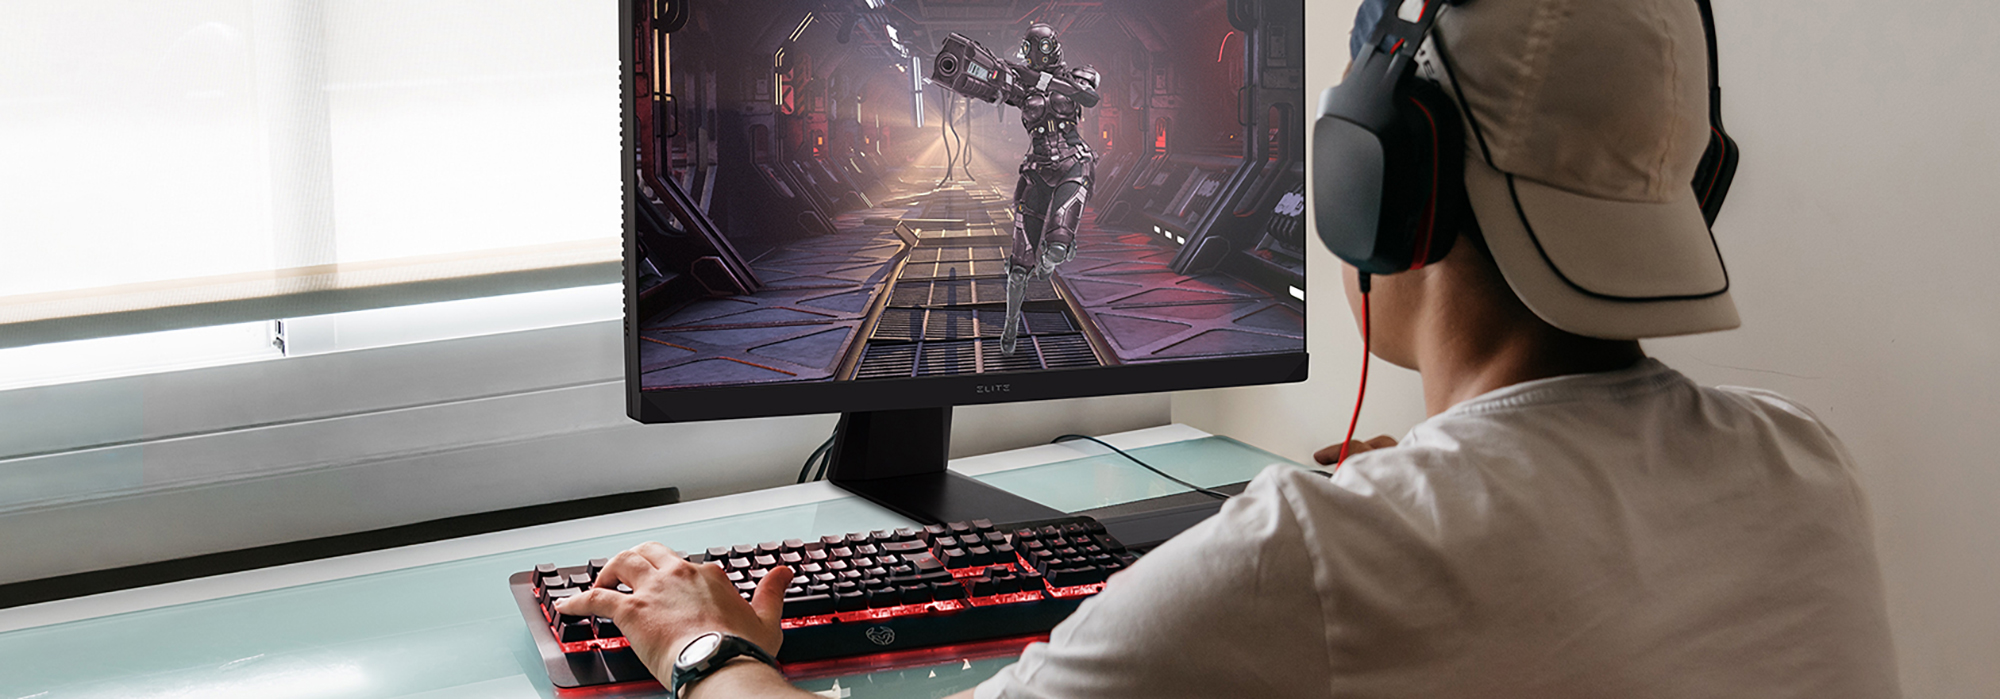 Gaming Goes Next Level with Performance-Driven ViewSonic Elite™ XG Monitors, Now Available Worldwide